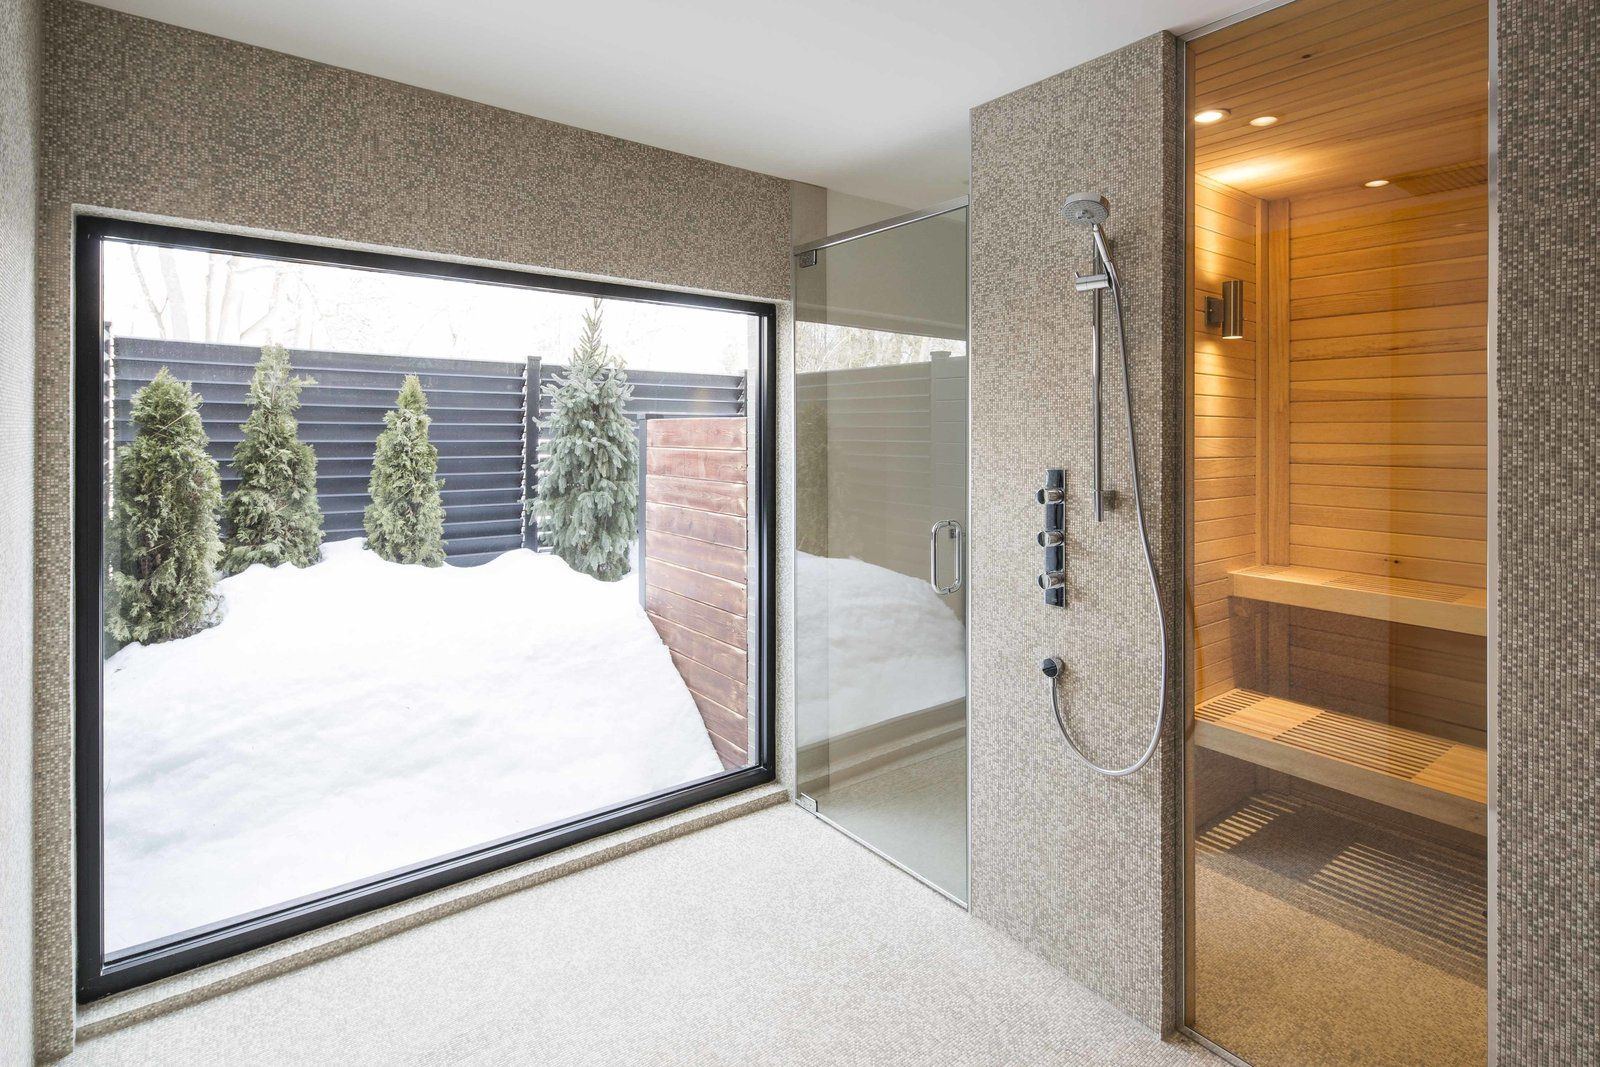 The lower floor houses a spa, gym, and office. A built-in bathroom by Espace Cuisine includes a sauna. How to Refresh a Midcentury Gem in Quebec? Winter-White Everything - Photo 12 of 12